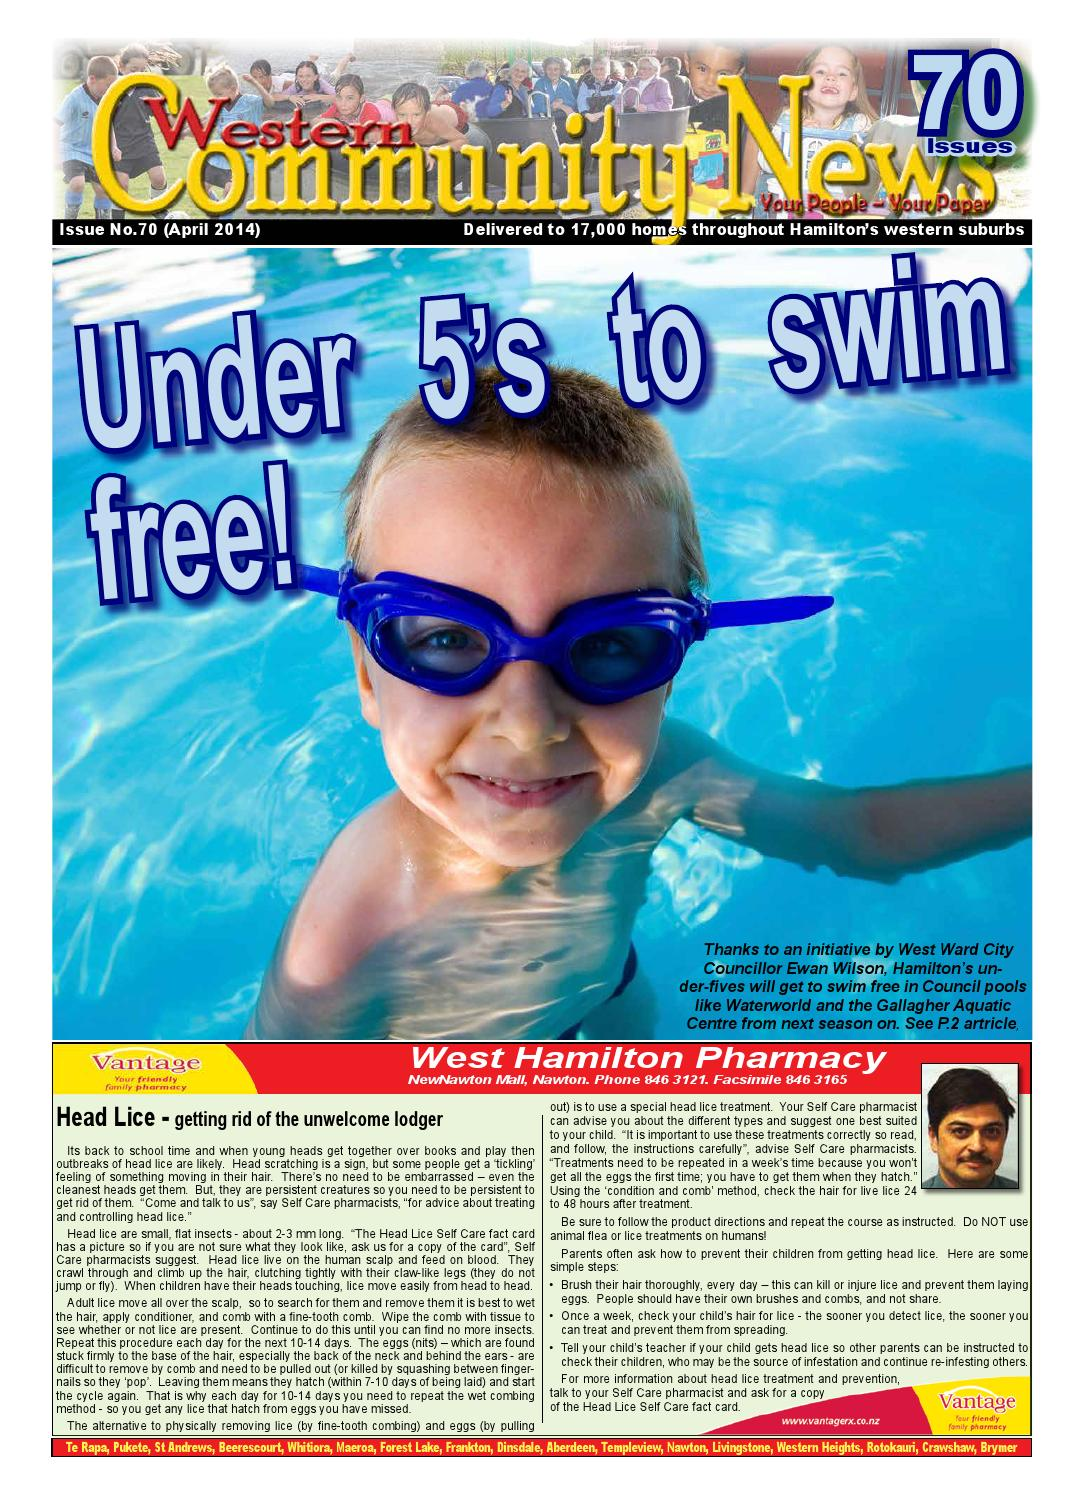 Western community news 70 april 2014 by the western community centre issuu for Gallagher swimming pool hamilton